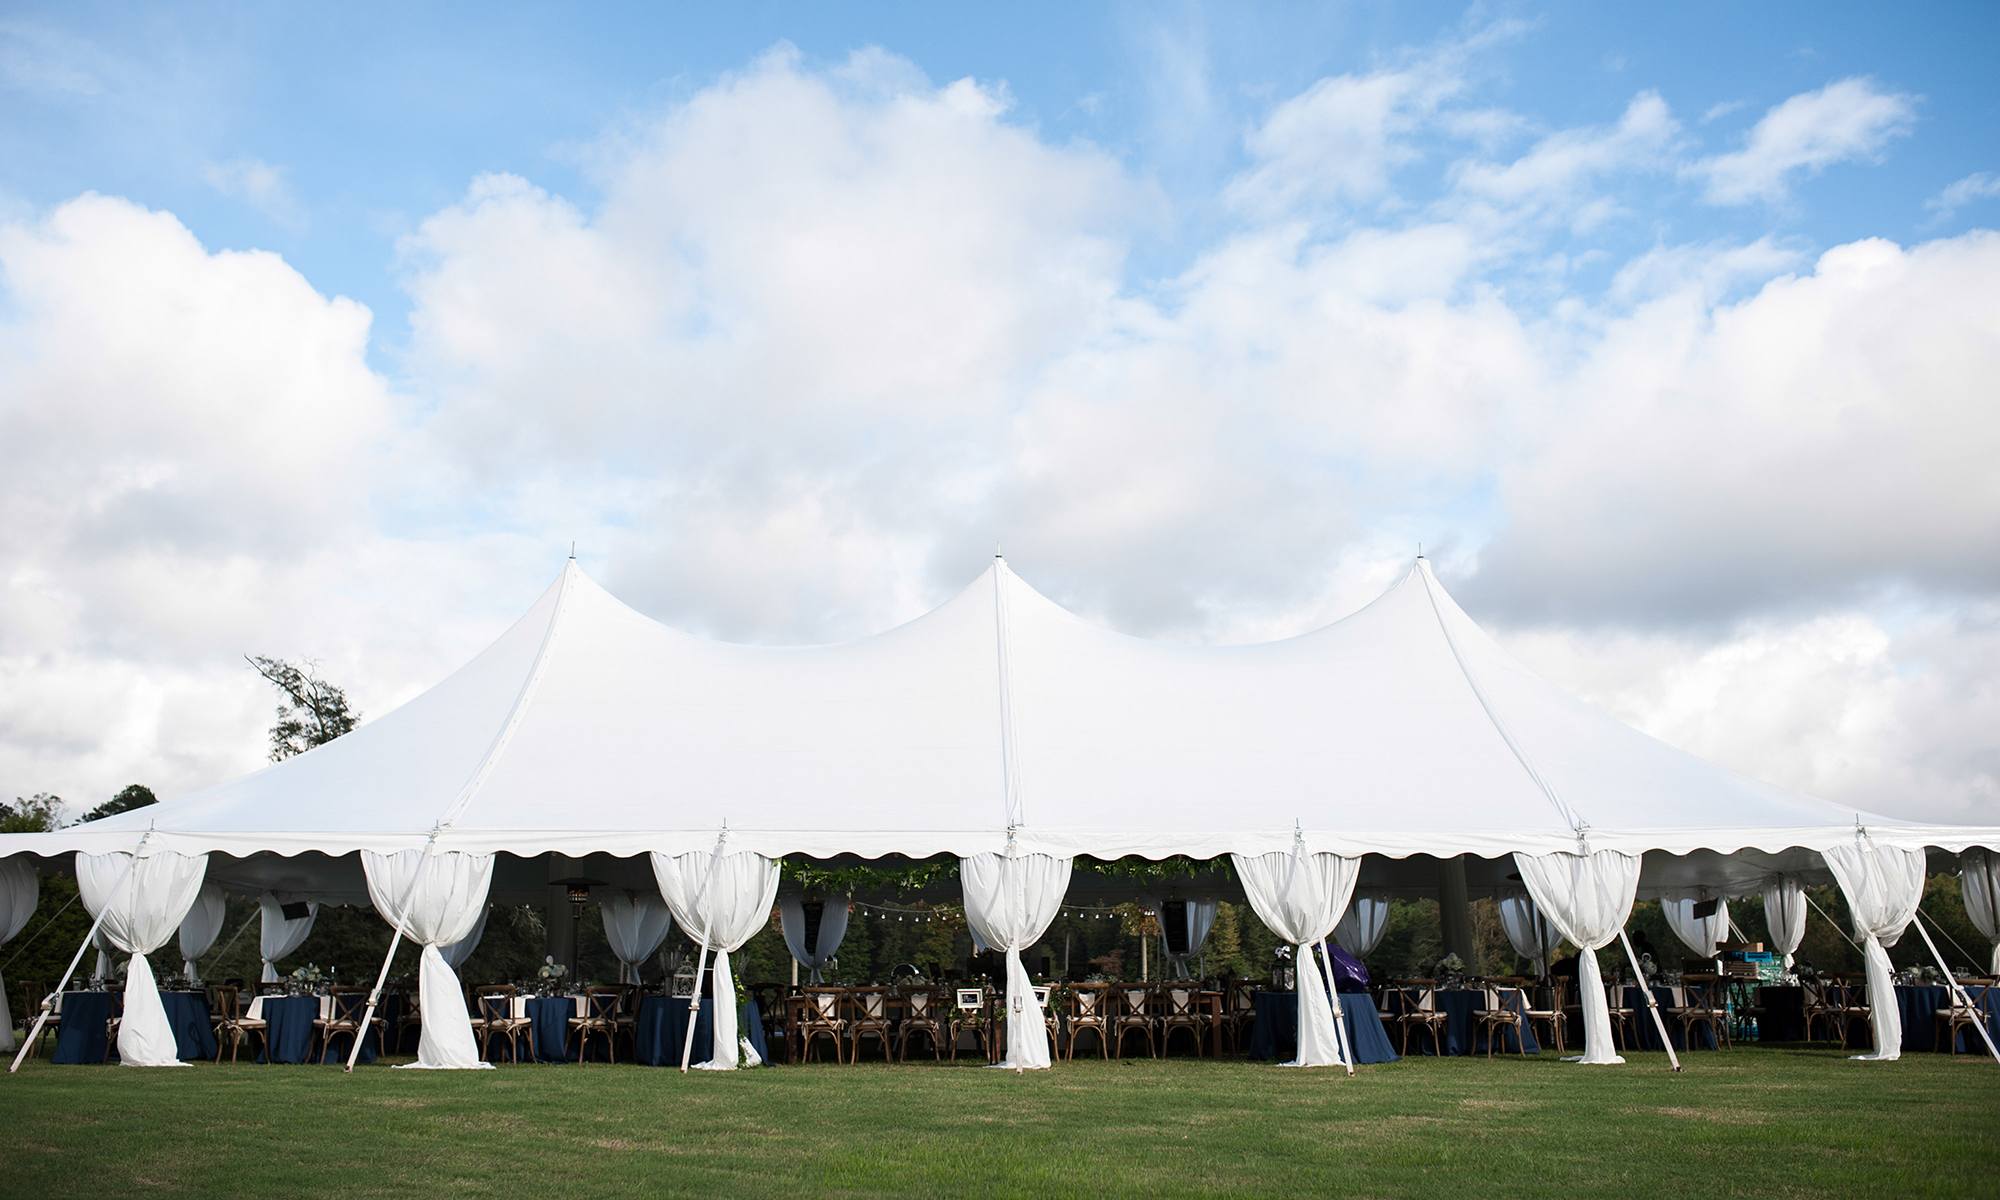 High Peak Pole Tents & LARGE HIGH PEAK POLE TENT RENTAL by Oconee Events | Athens GA